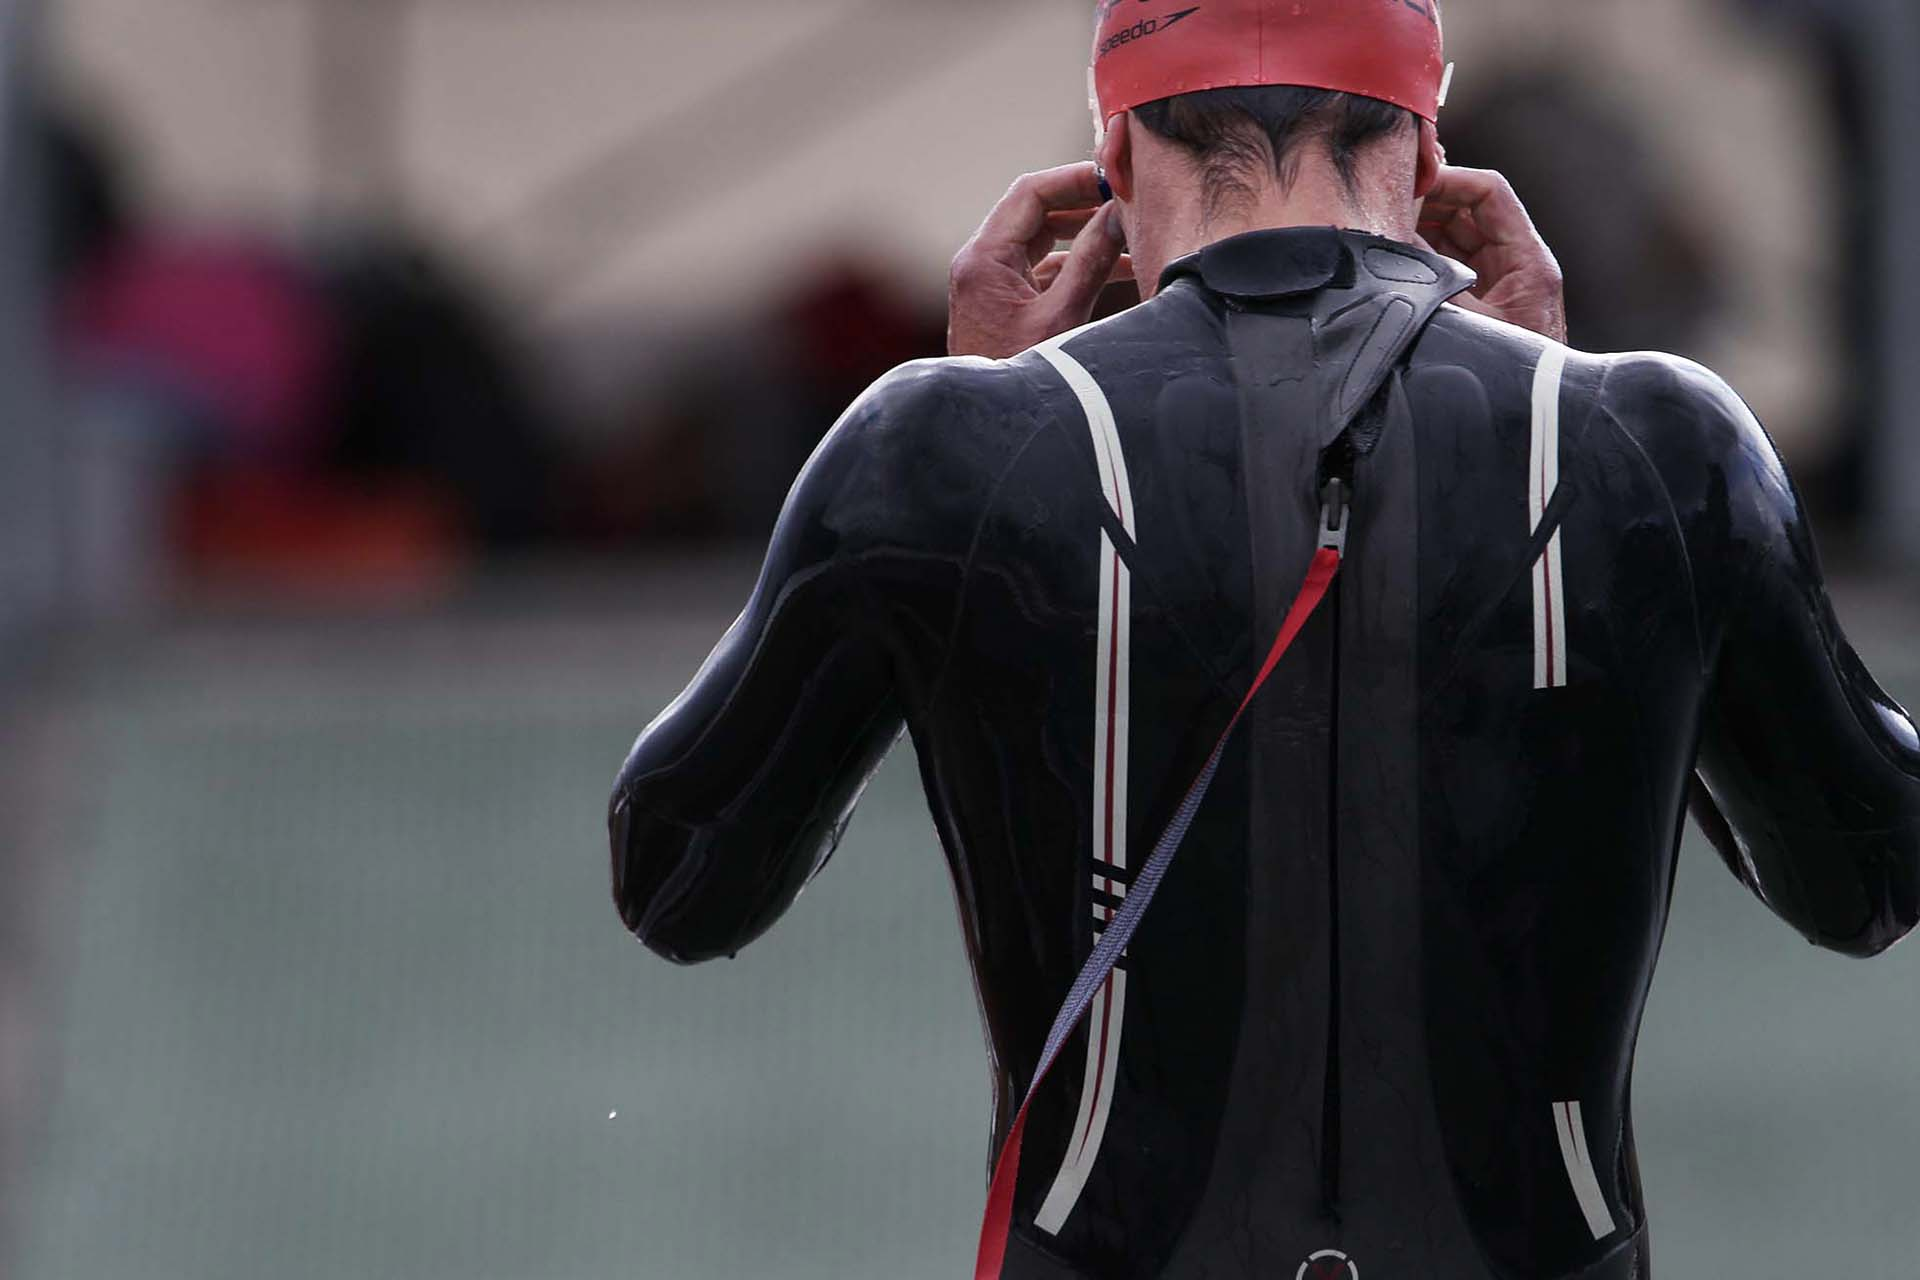 Simon_OpenWater_RedHat_Back